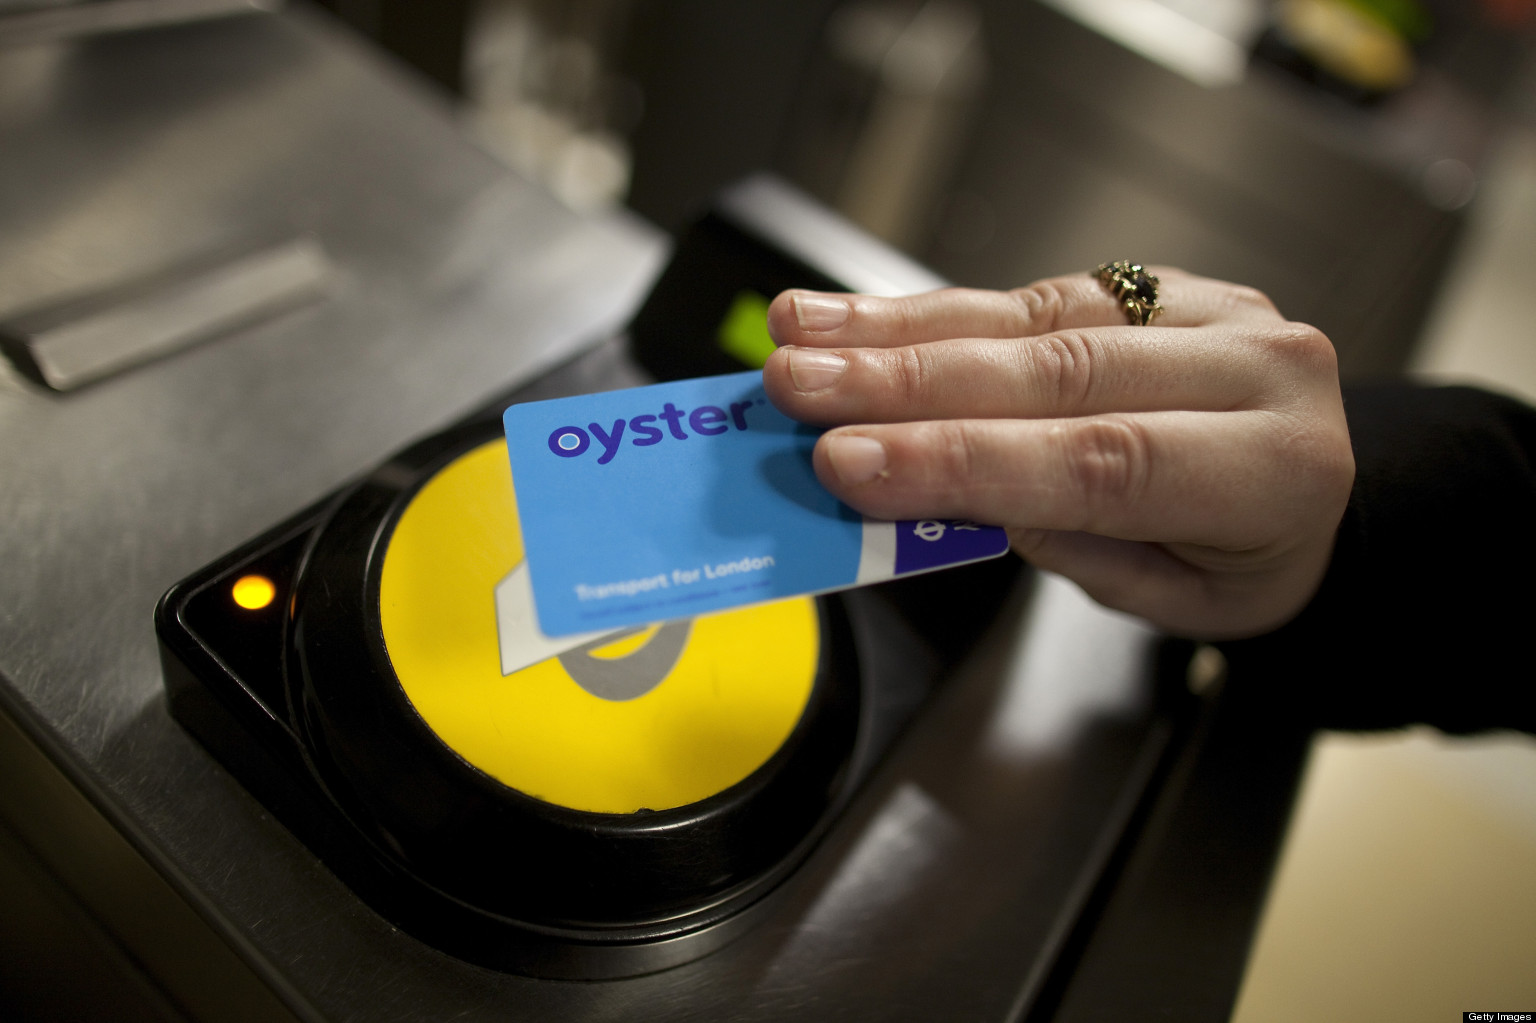 Why No Solution to Oyster-Contactless 'Card Clash' on London's Tube and Buses? | HuffPost UK